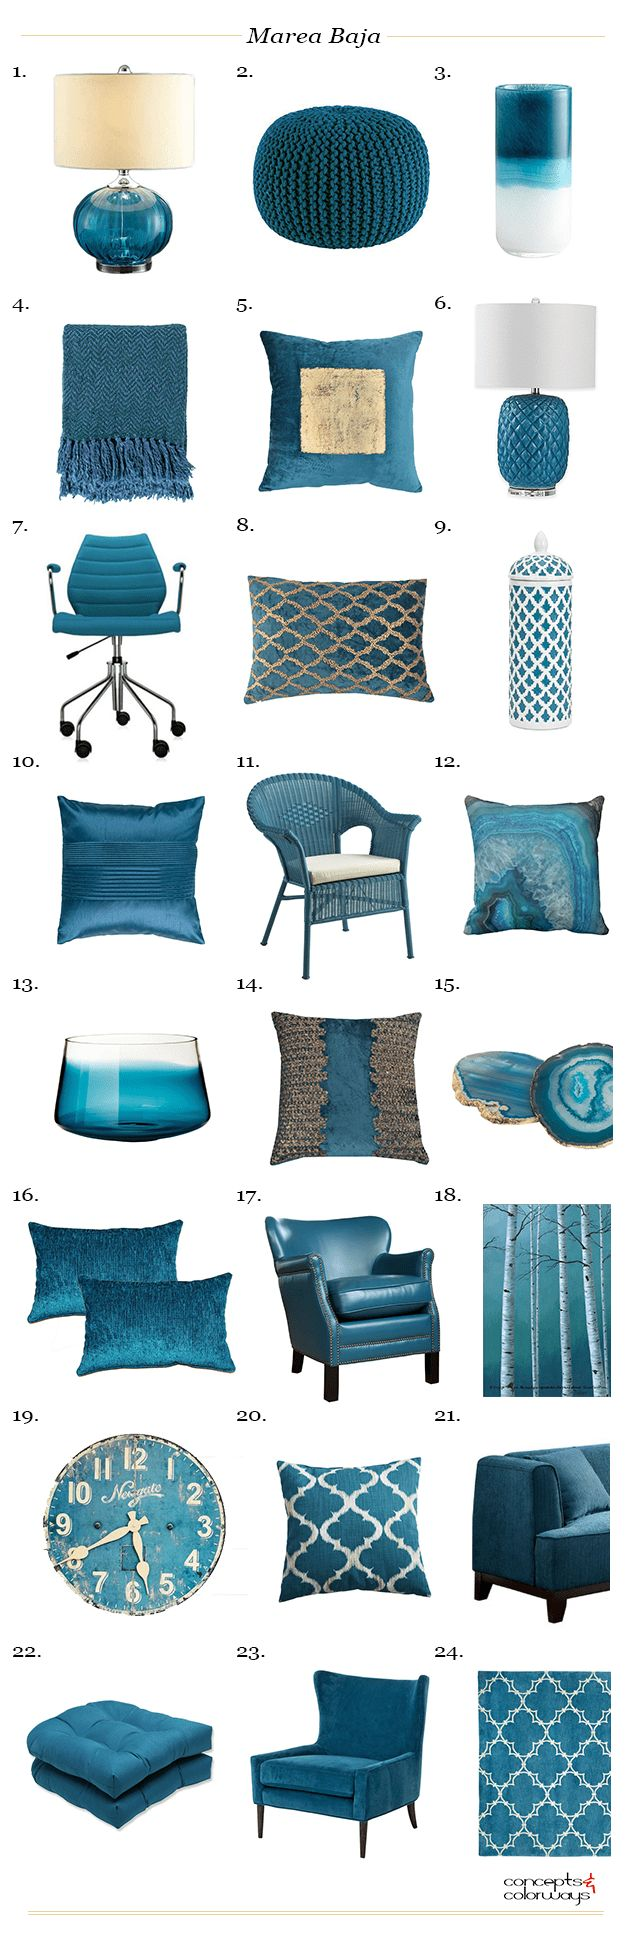 Best 25+ Dark teal ideas on Pinterest | Deep teal, Blue feature ...